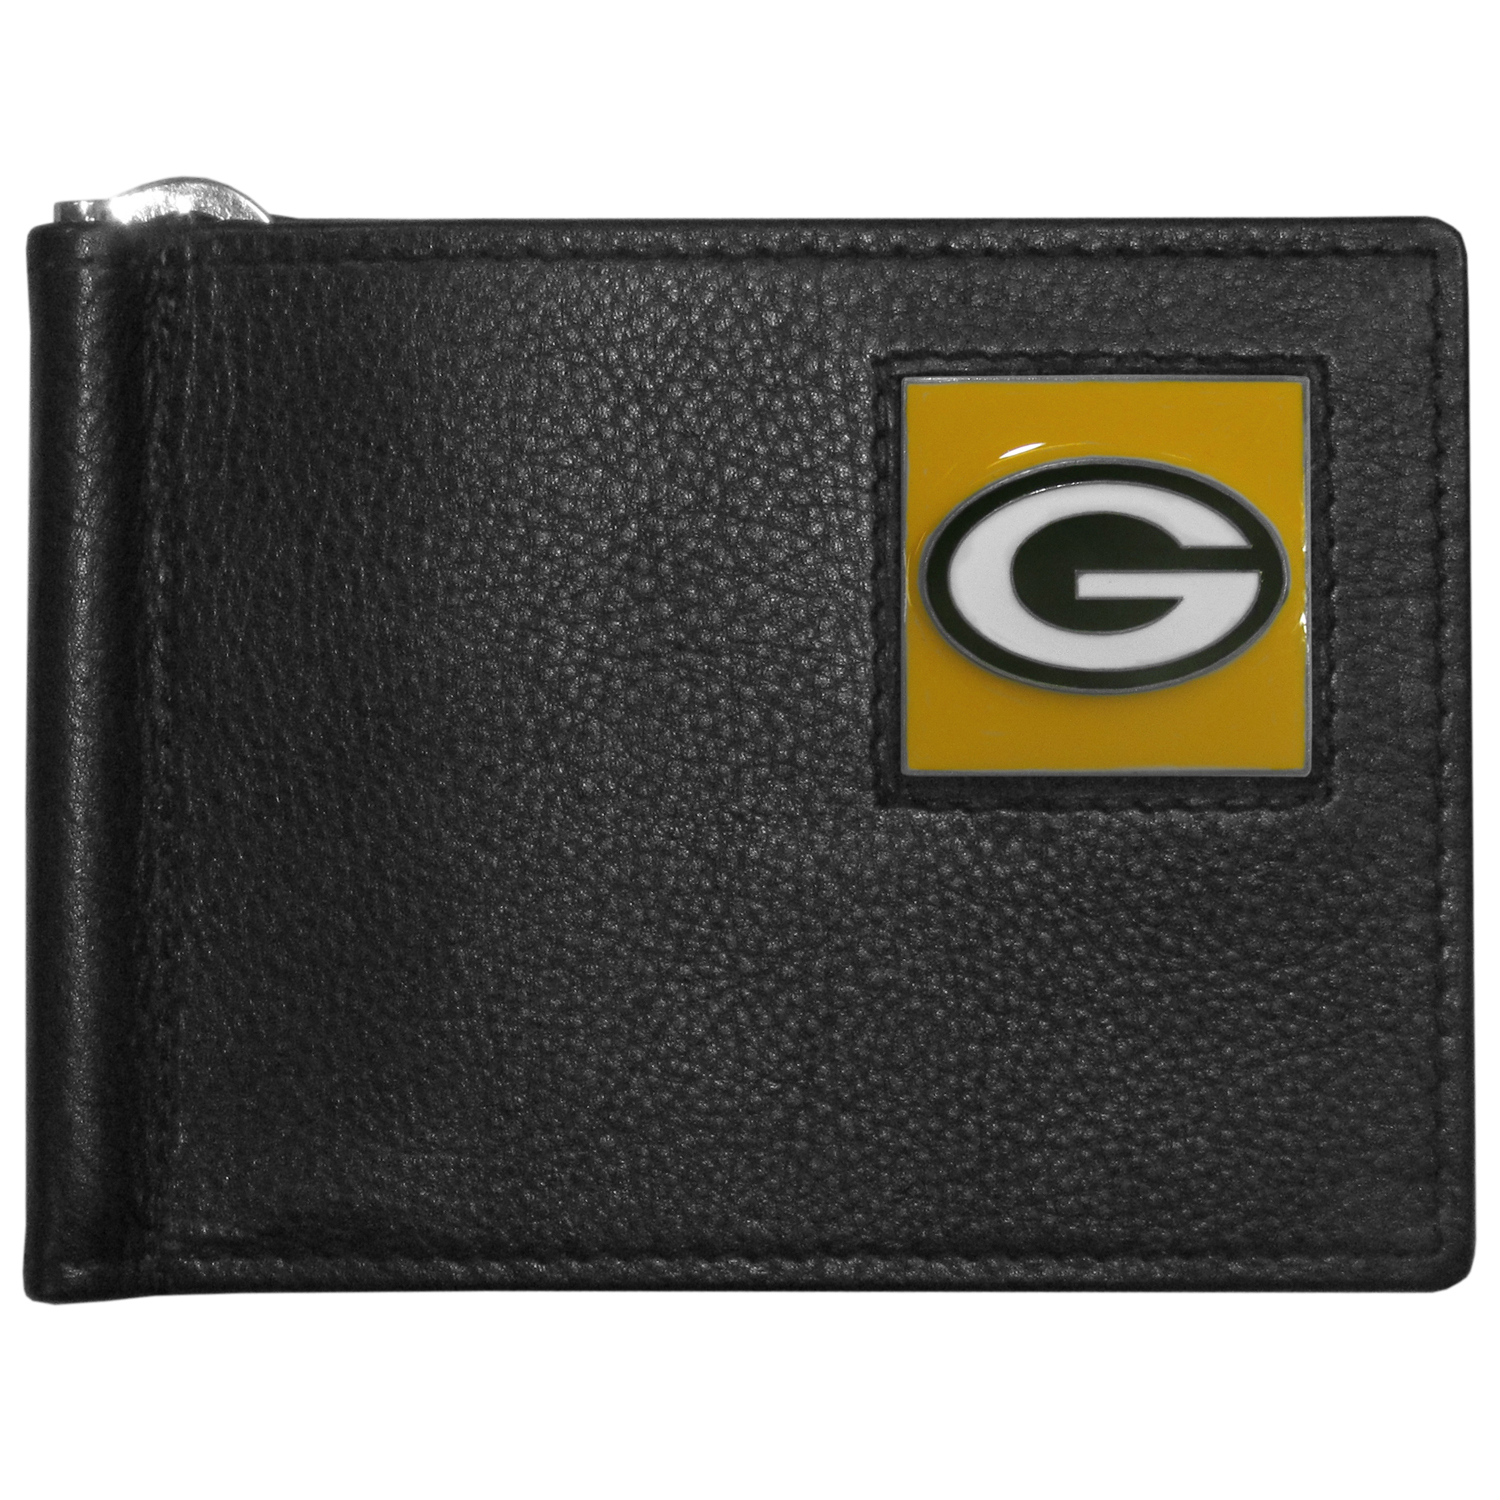 Green Bay Packers Leather Bill Clip Wallet - This cool new style wallet features an inner, metal bill clip that lips up for easy access. The super slim wallet holds tons of stuff with ample pockets, credit card slots & windowed ID slot.  The wallet is made of genuine fine grain leather and it finished with a metal Green Bay Packers emblem. The wallet is shipped in gift box packaging.